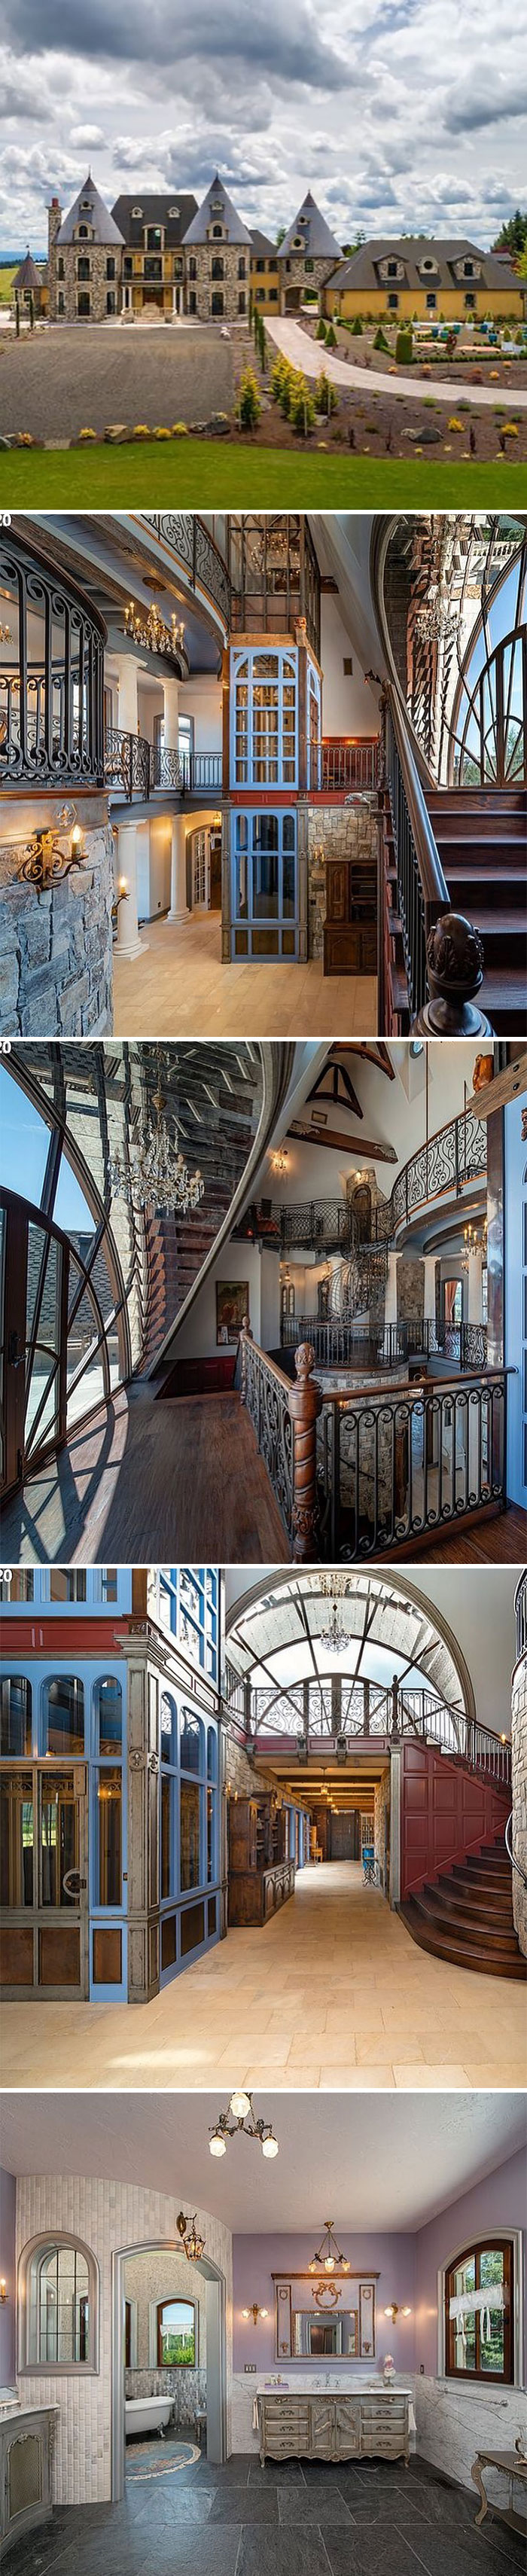 I Don't Know What's Happening Here West Linn, Or $5,750,000 10 Bd, 12 Ba 13,023 Sf